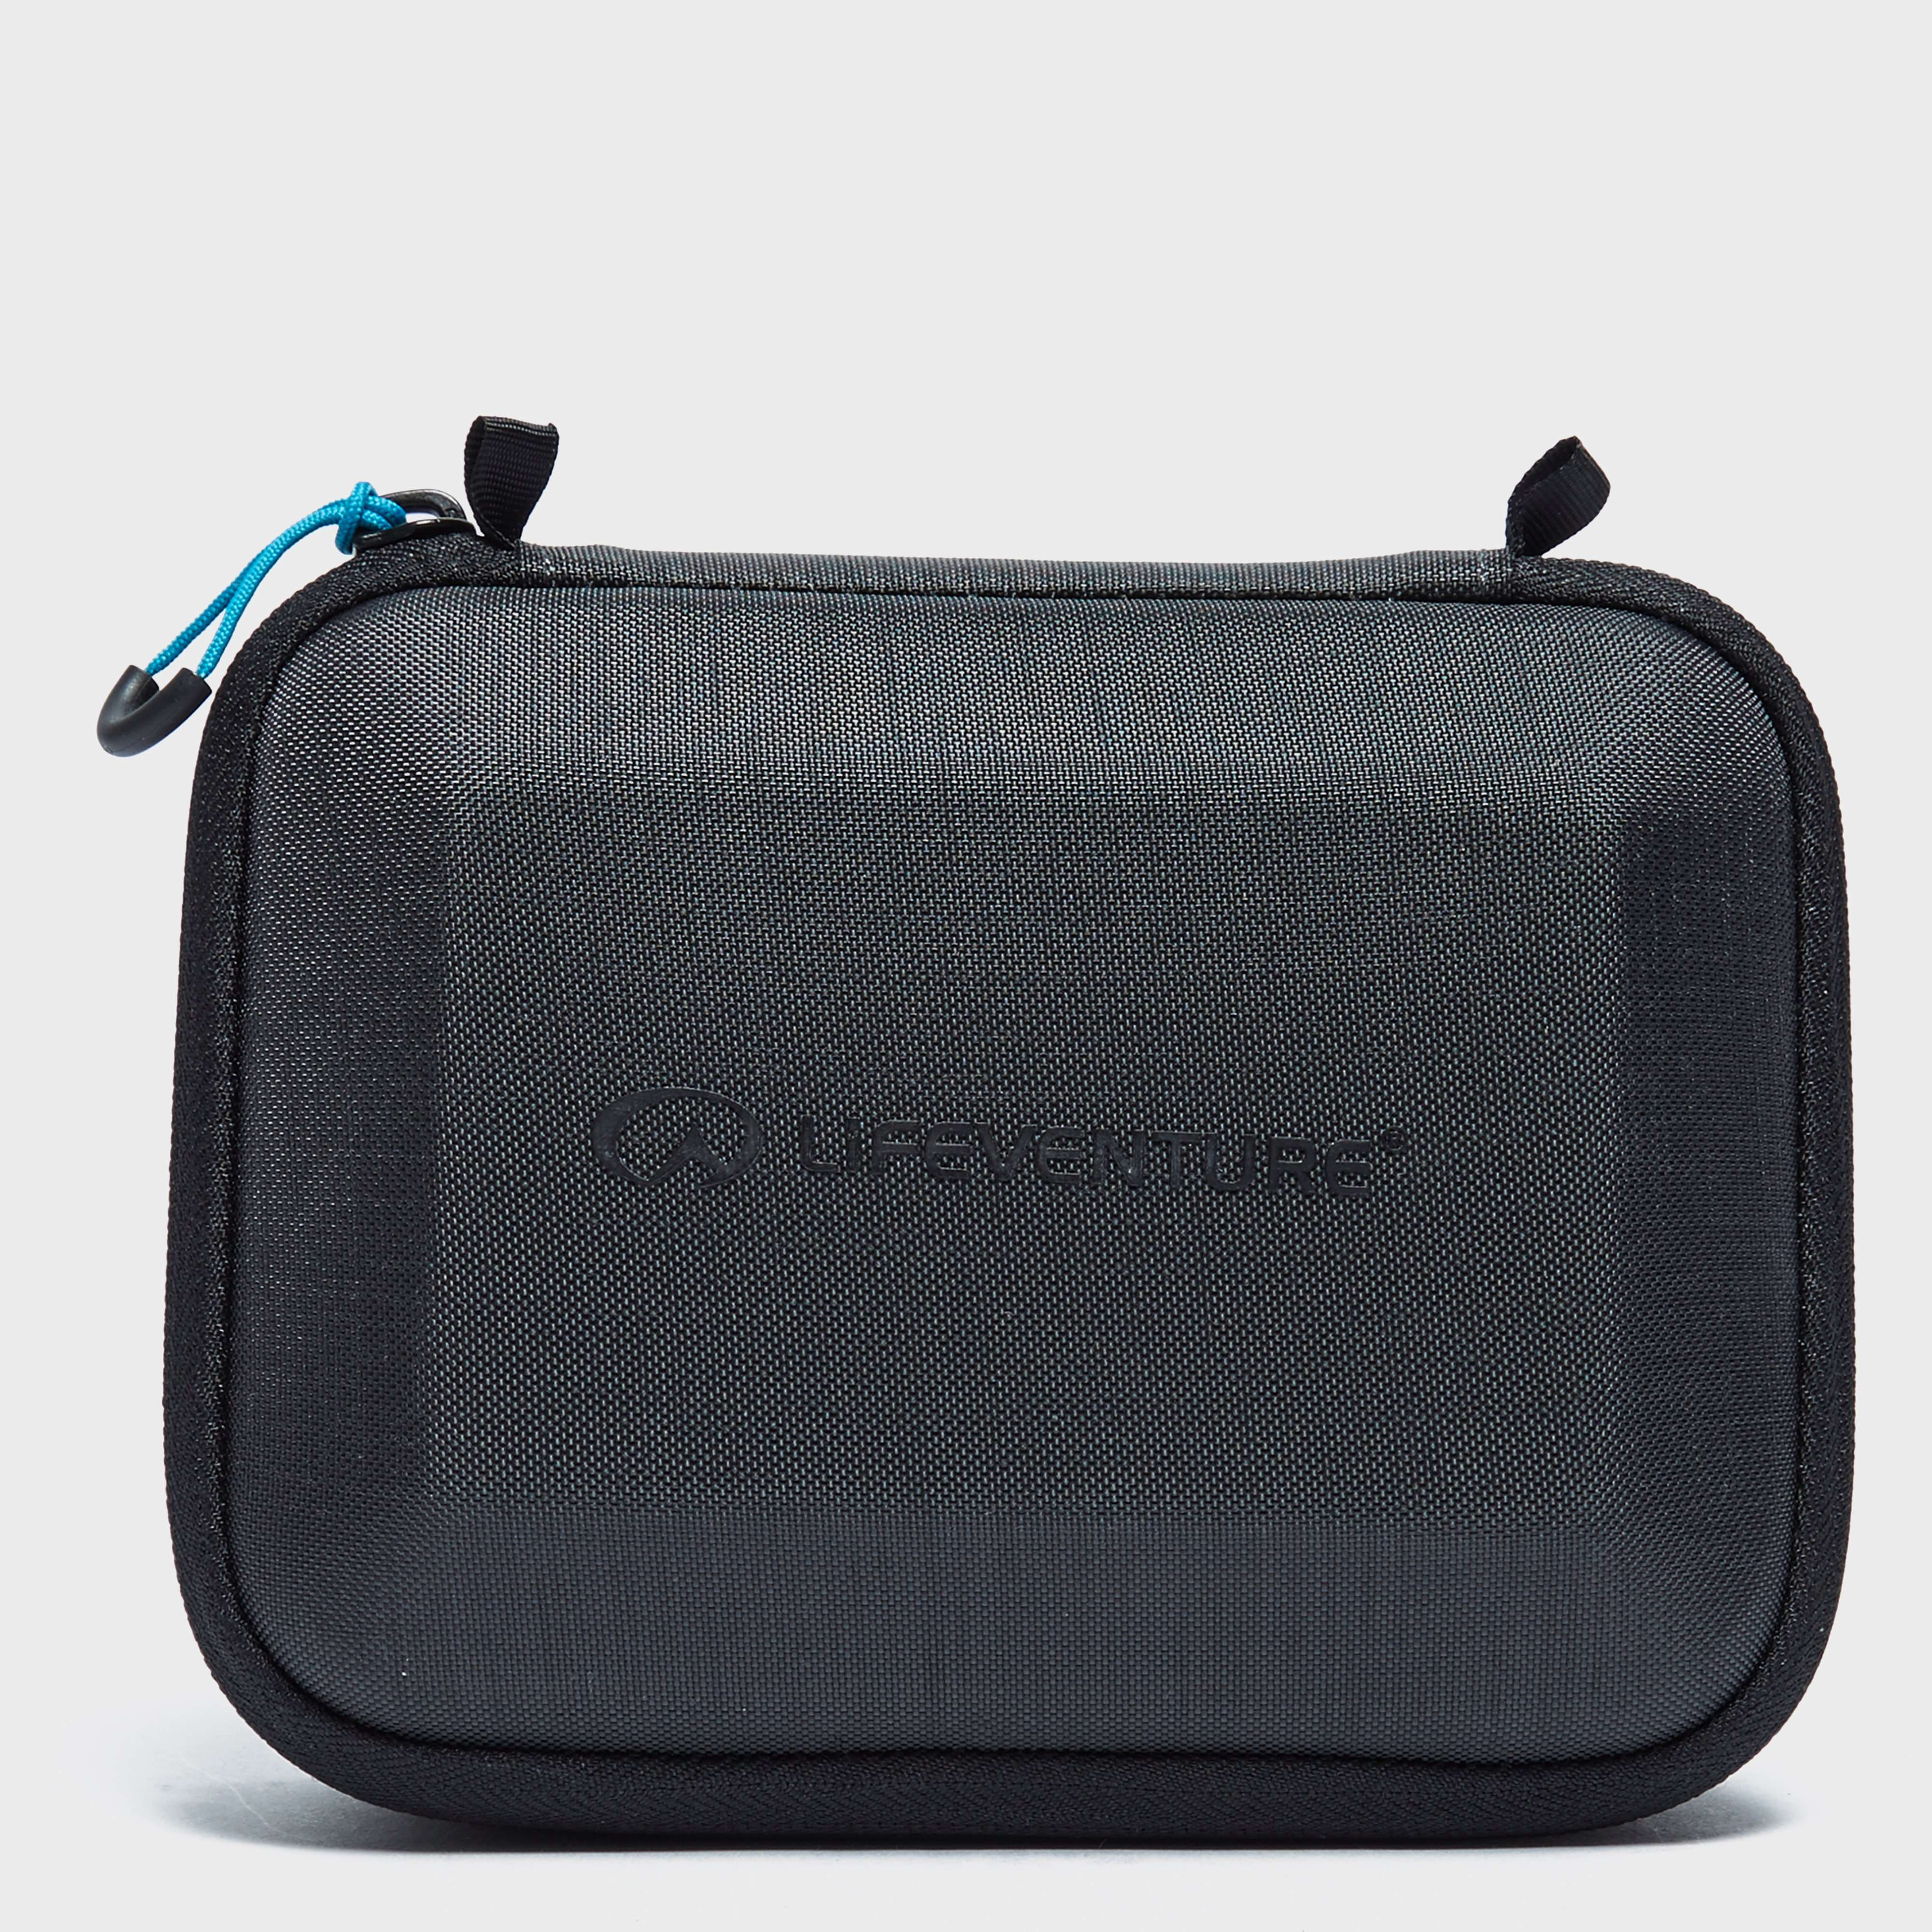 LIFEVENTURE Tech Case